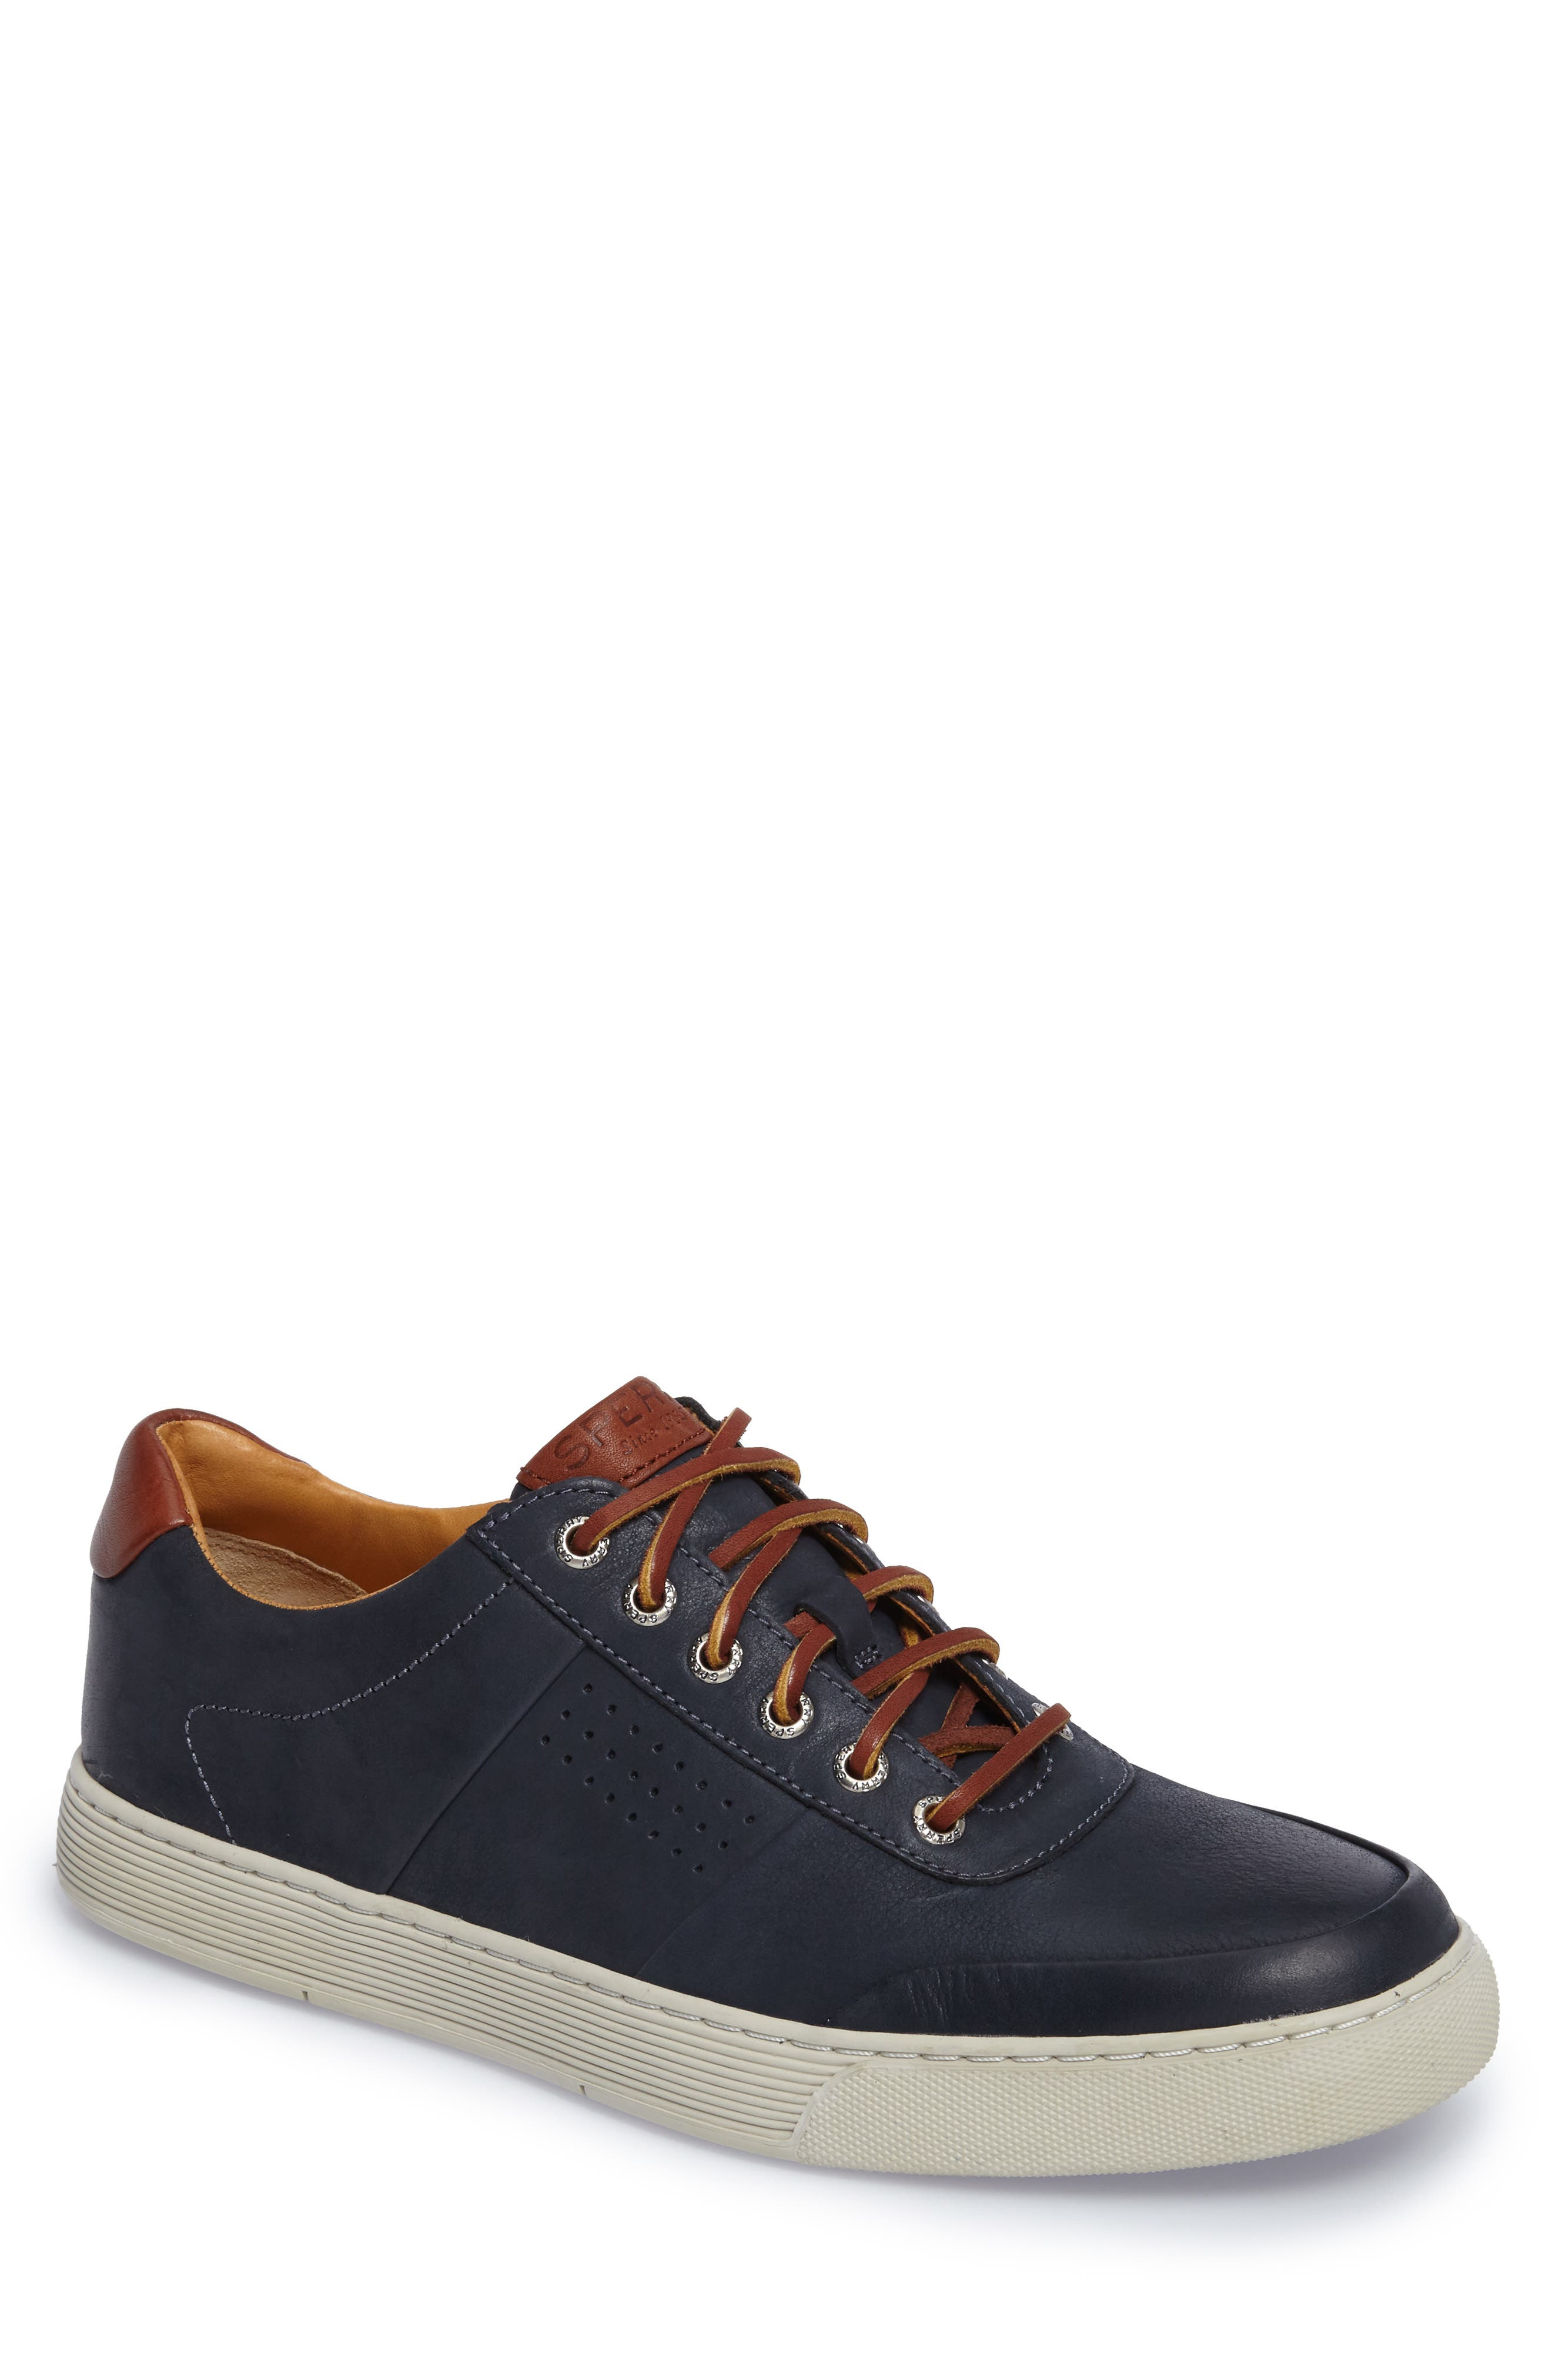 Gold Cup Sport Sneaker,                             Main thumbnail 1, color,                             Navy Leather